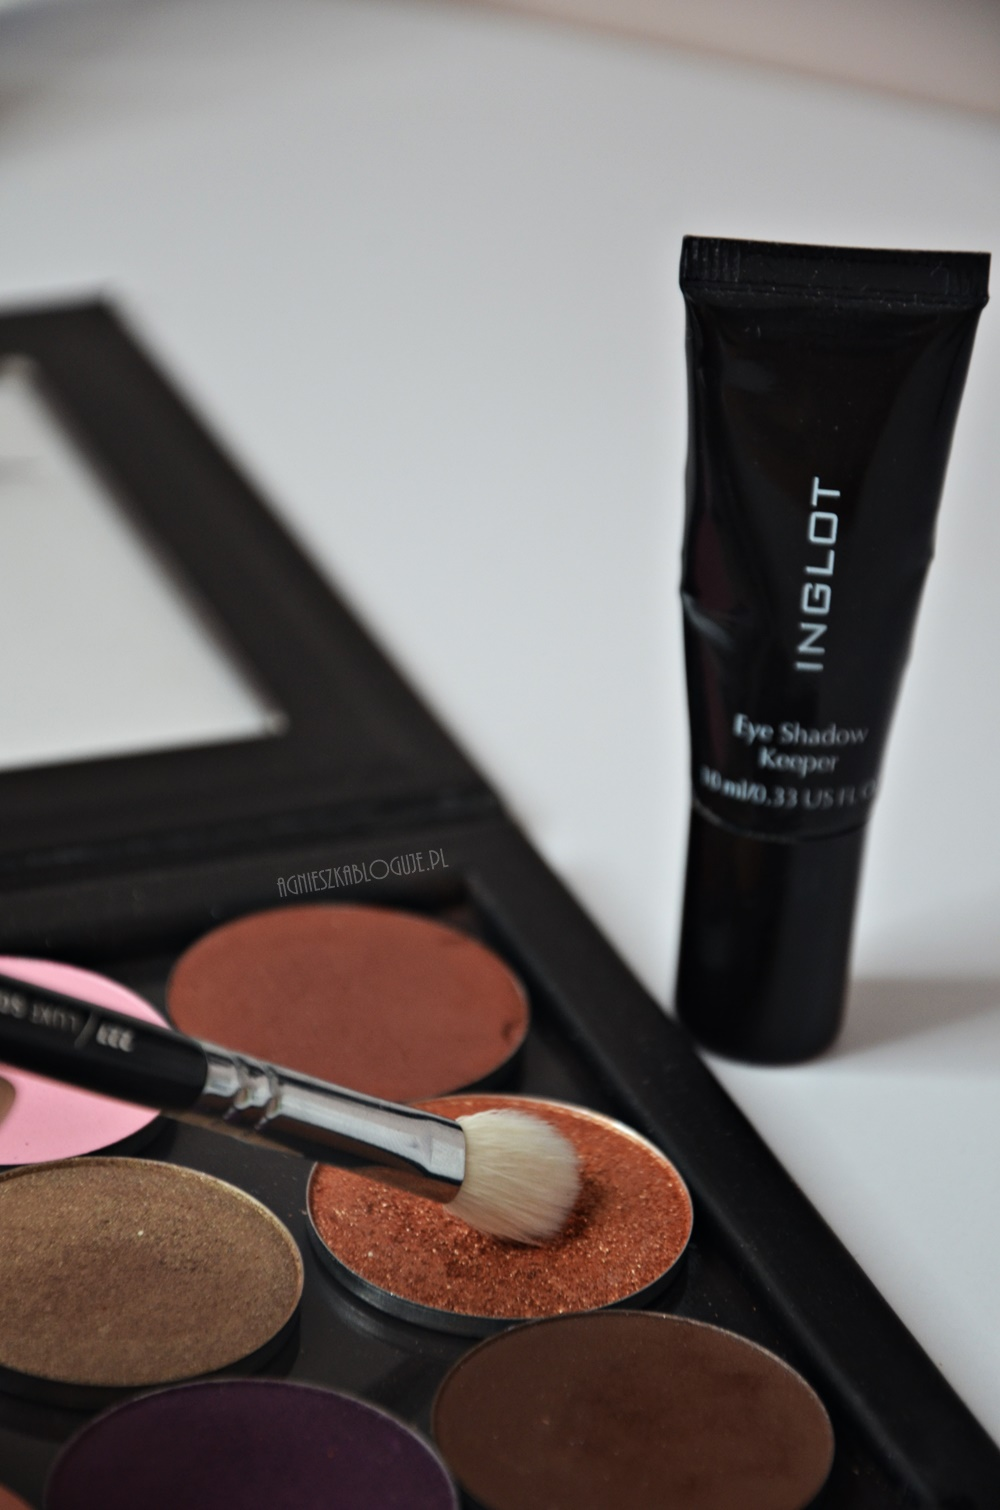 baza-pod-cienie-inglot-eye-shadow-keeper-zamiennik